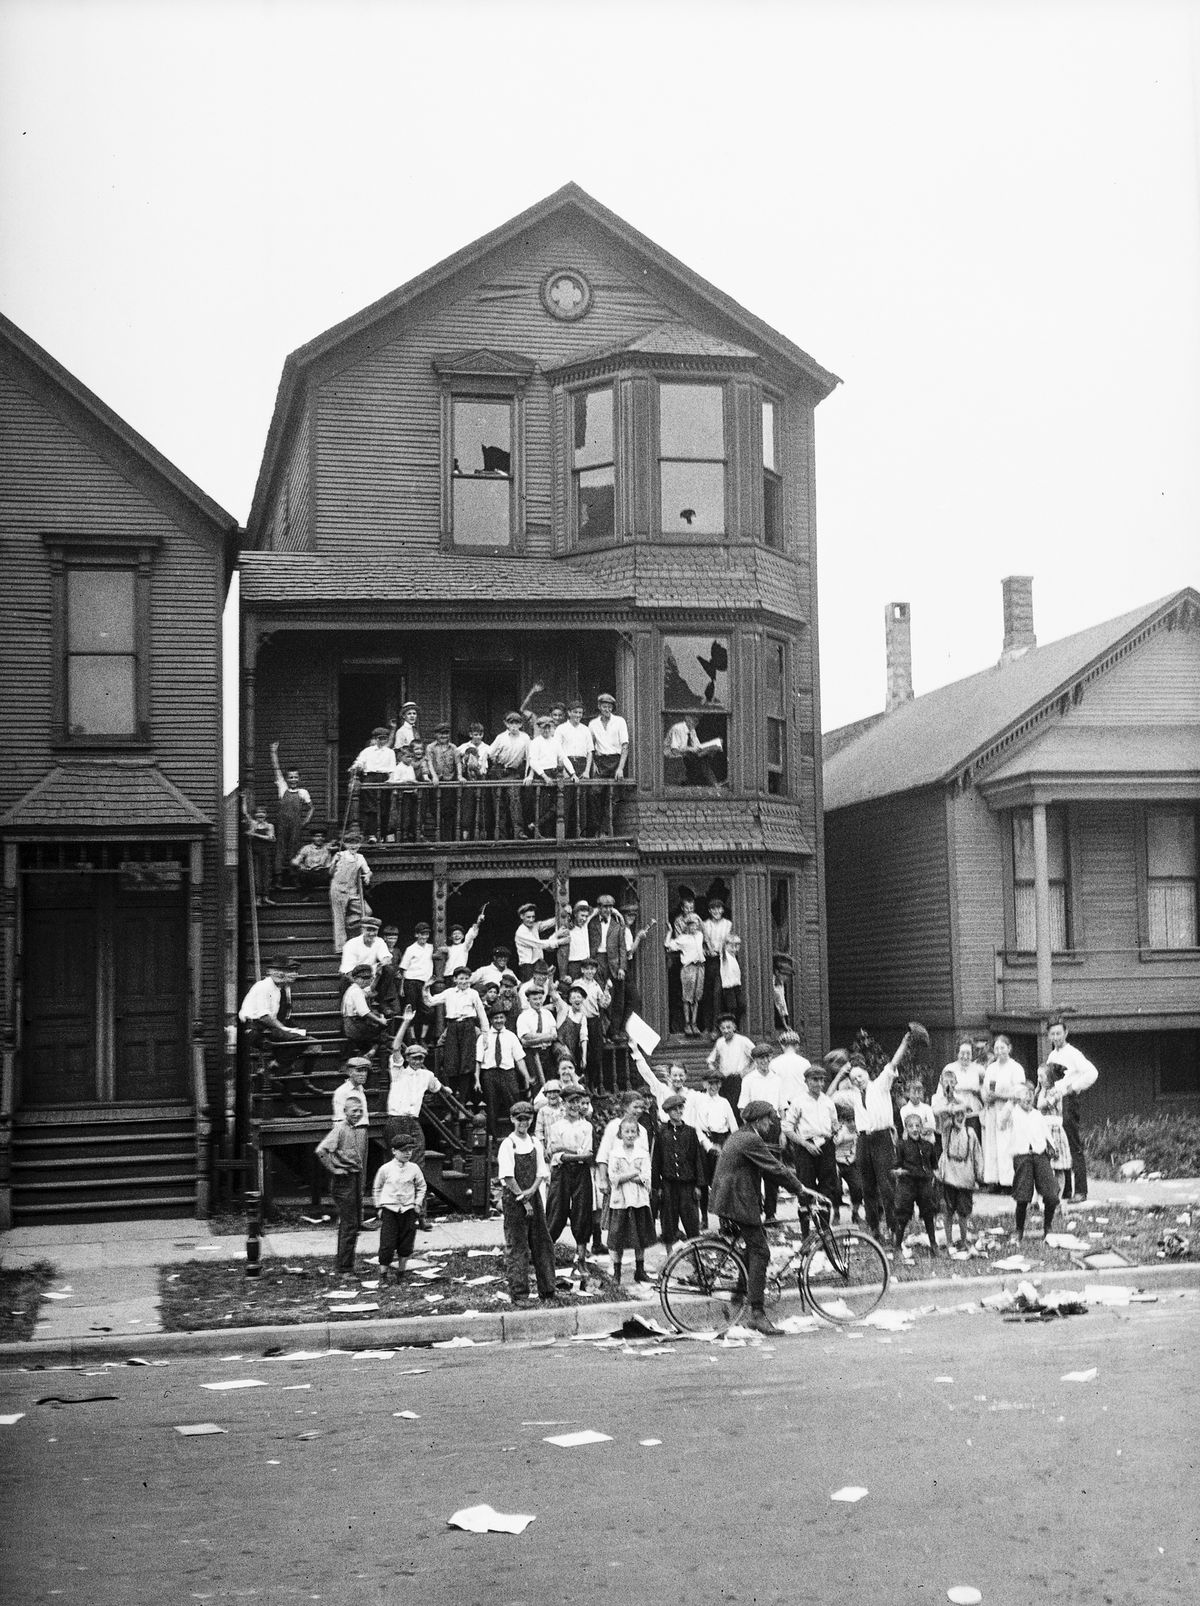 A crowd gathers at a house that has been vandalized and looted during the 1919 race riots in Chicago.